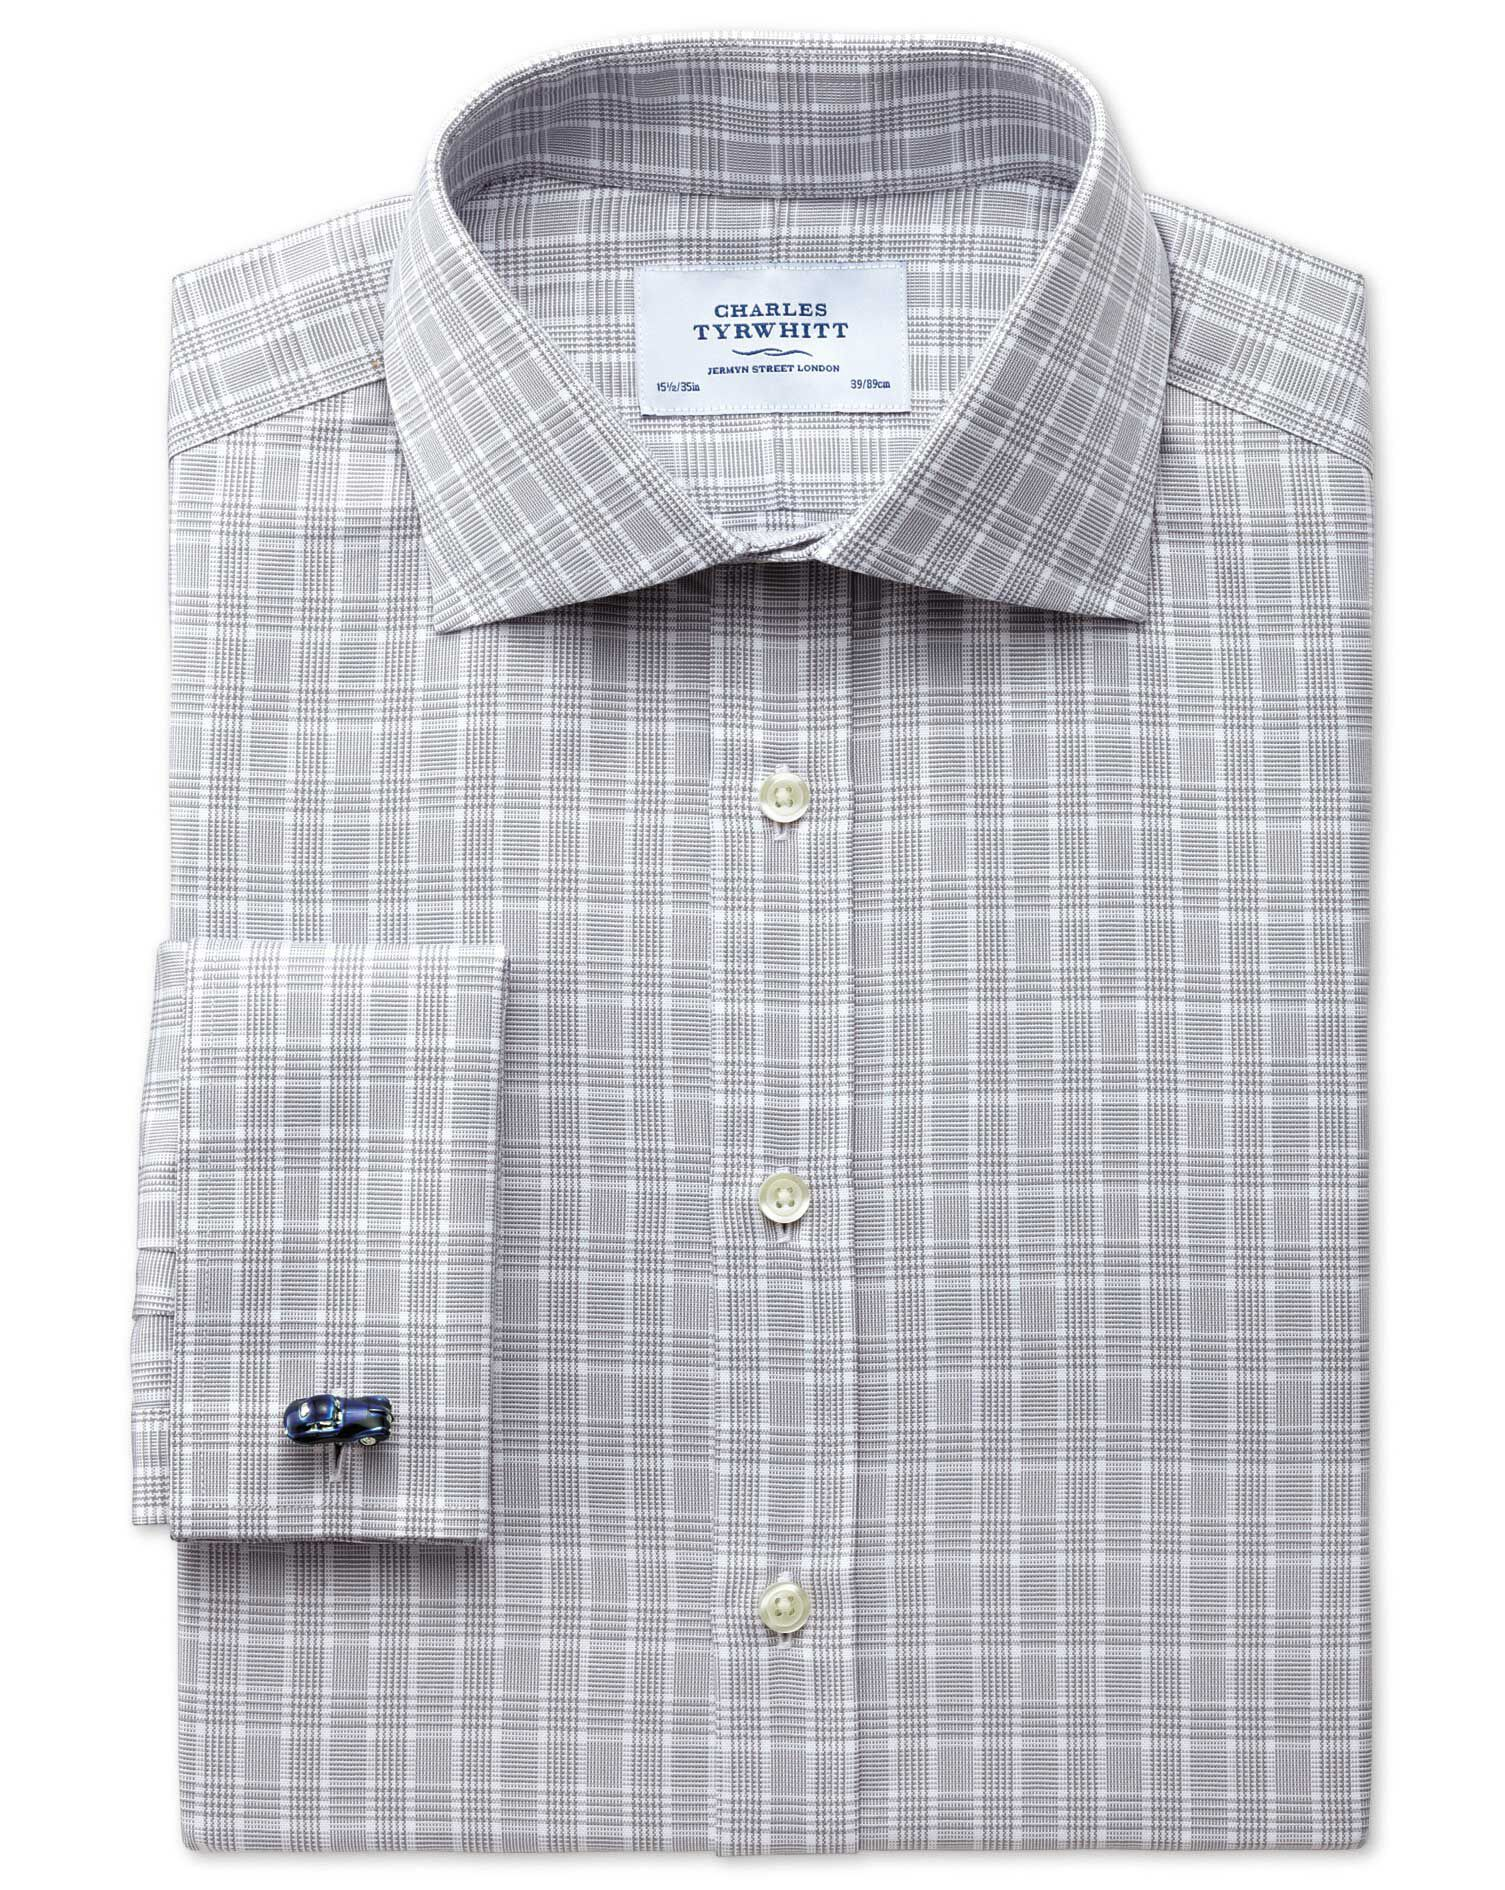 Classic Fit Prince Of Wales Silver Cotton Formal Shirt Double Cuff Size 15/33 by Charles Tyrwhitt